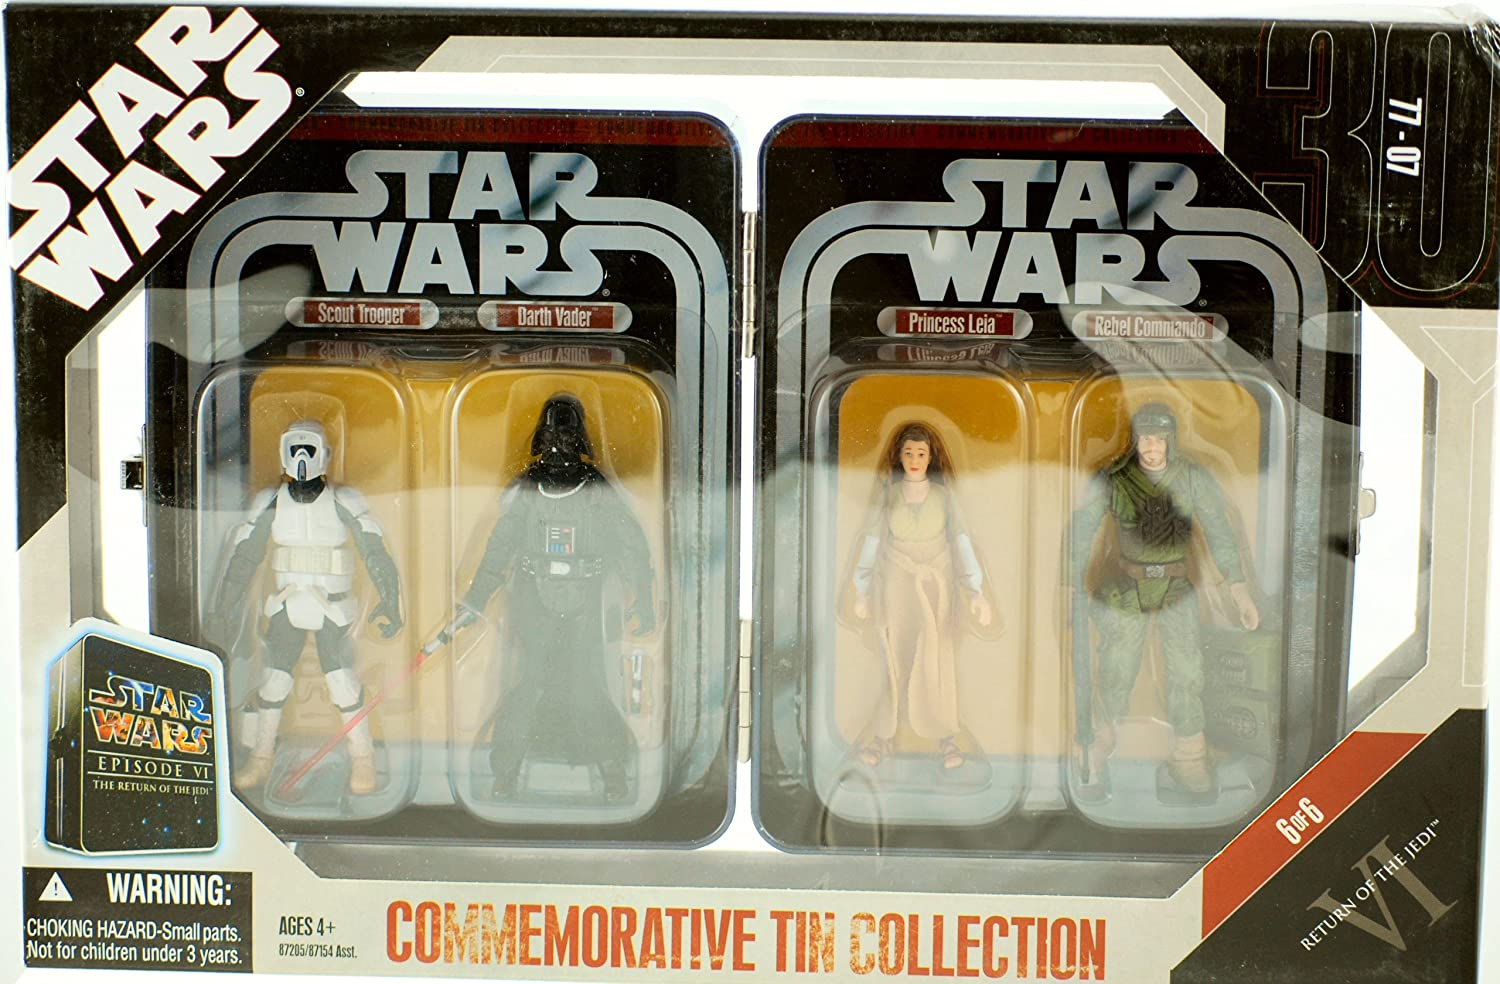 Rebel Commando Princess Leia Ewok Star Wars Episode VI 6 Collectible Tin Action Figure Set RETURN OF THE JEDI with 4 Action Figures: Biker Scout Trooper Darth Vader